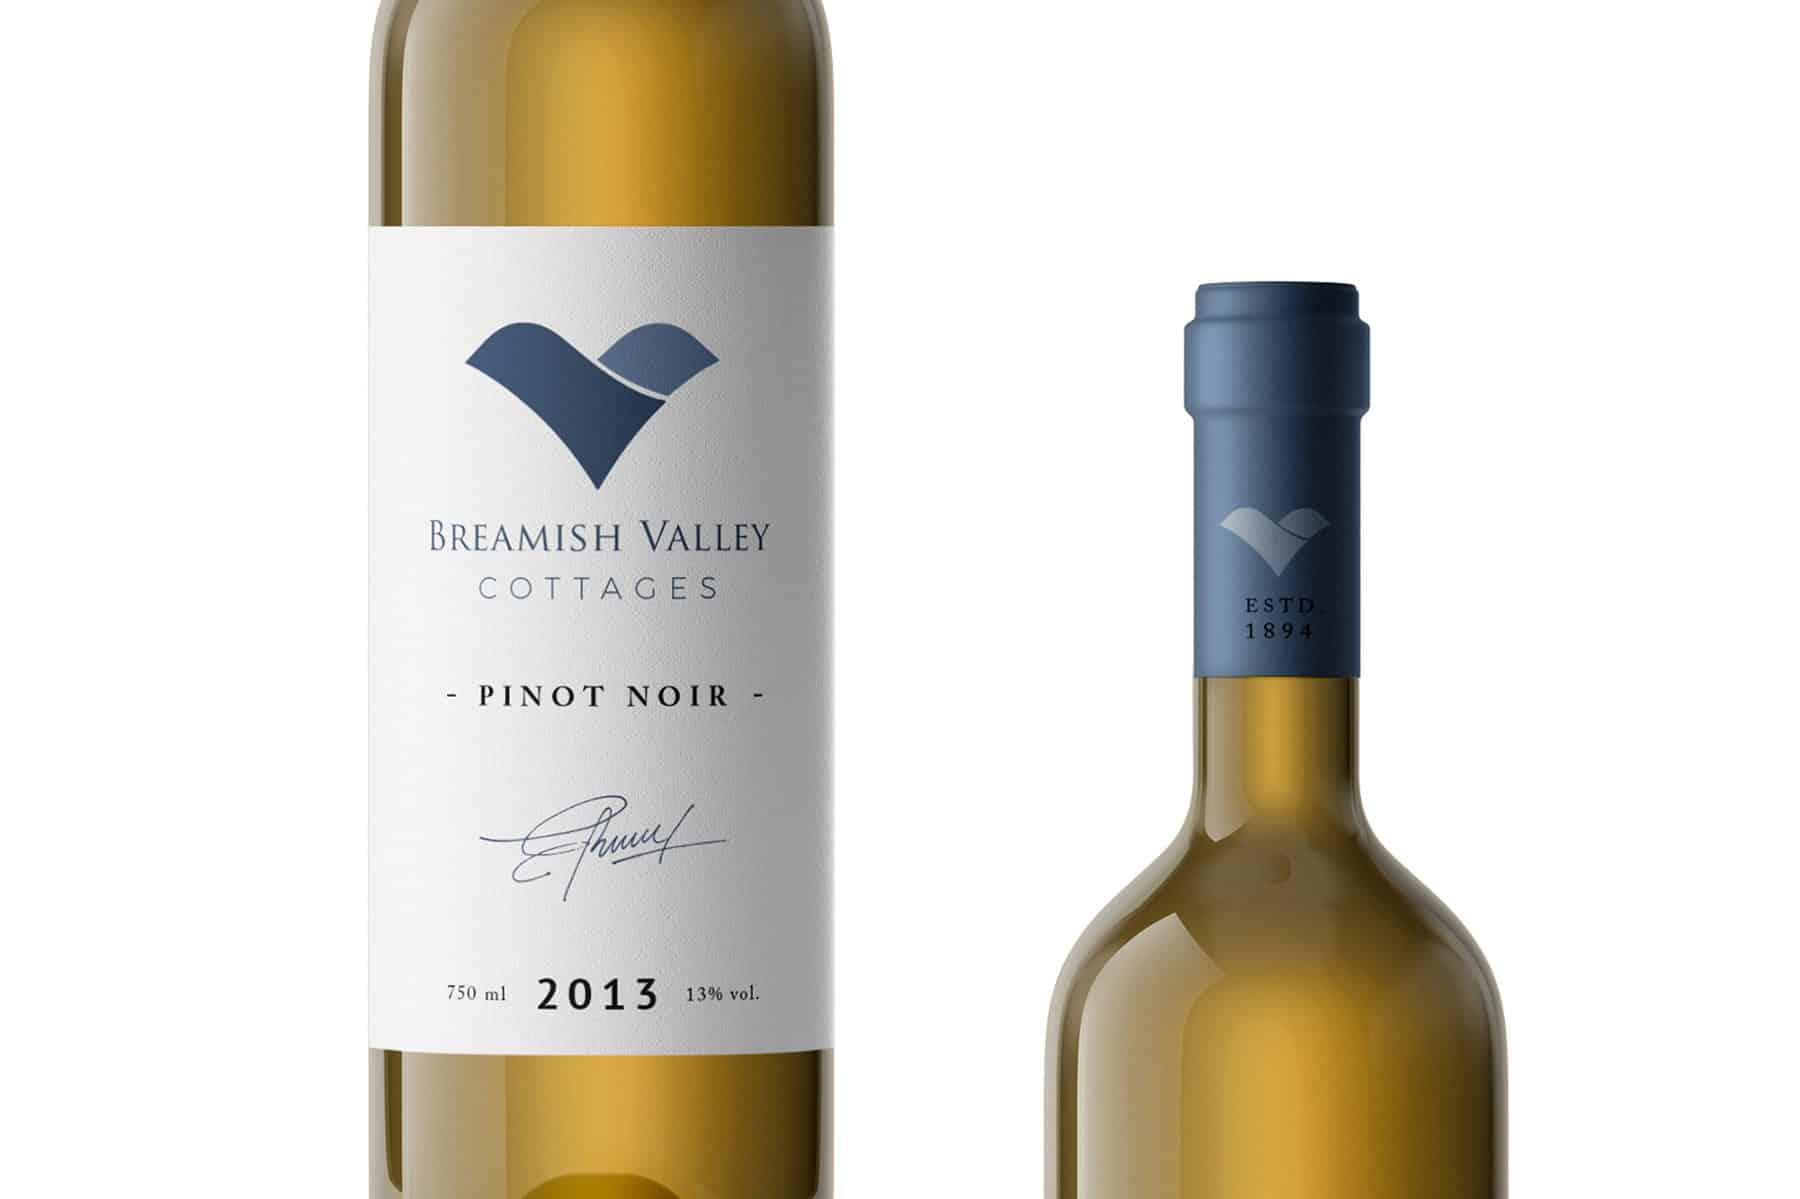 Breamish Valley Cottages Wine